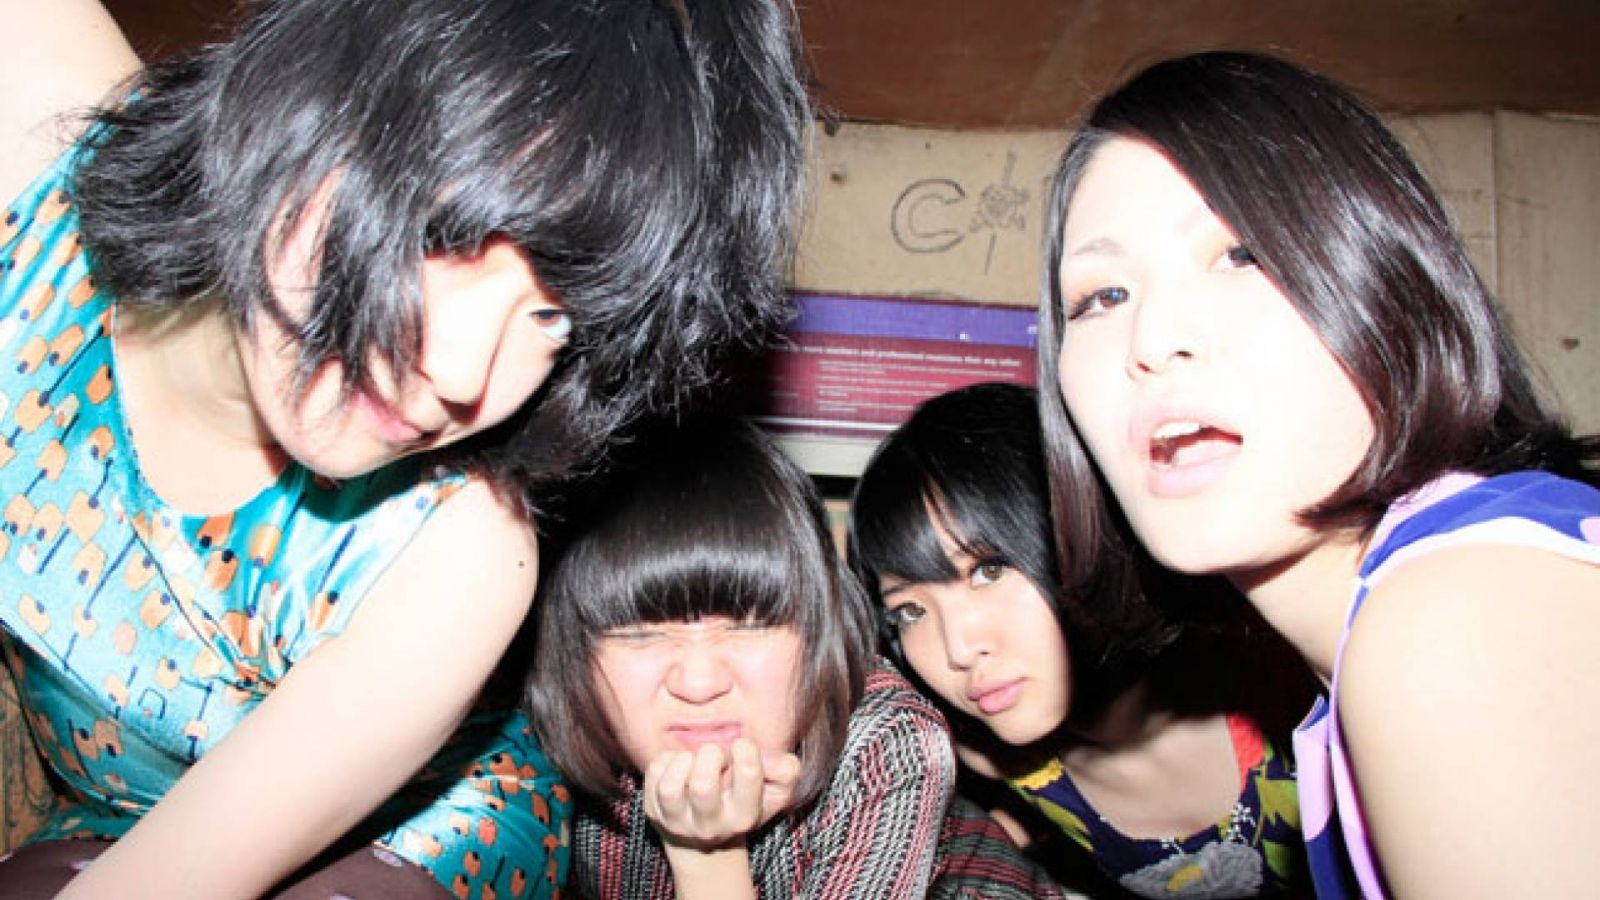 Otoboke Beaver to Release Album Worldwide and Tour the UK © Otoboke Beaver. Provided by Damnably.